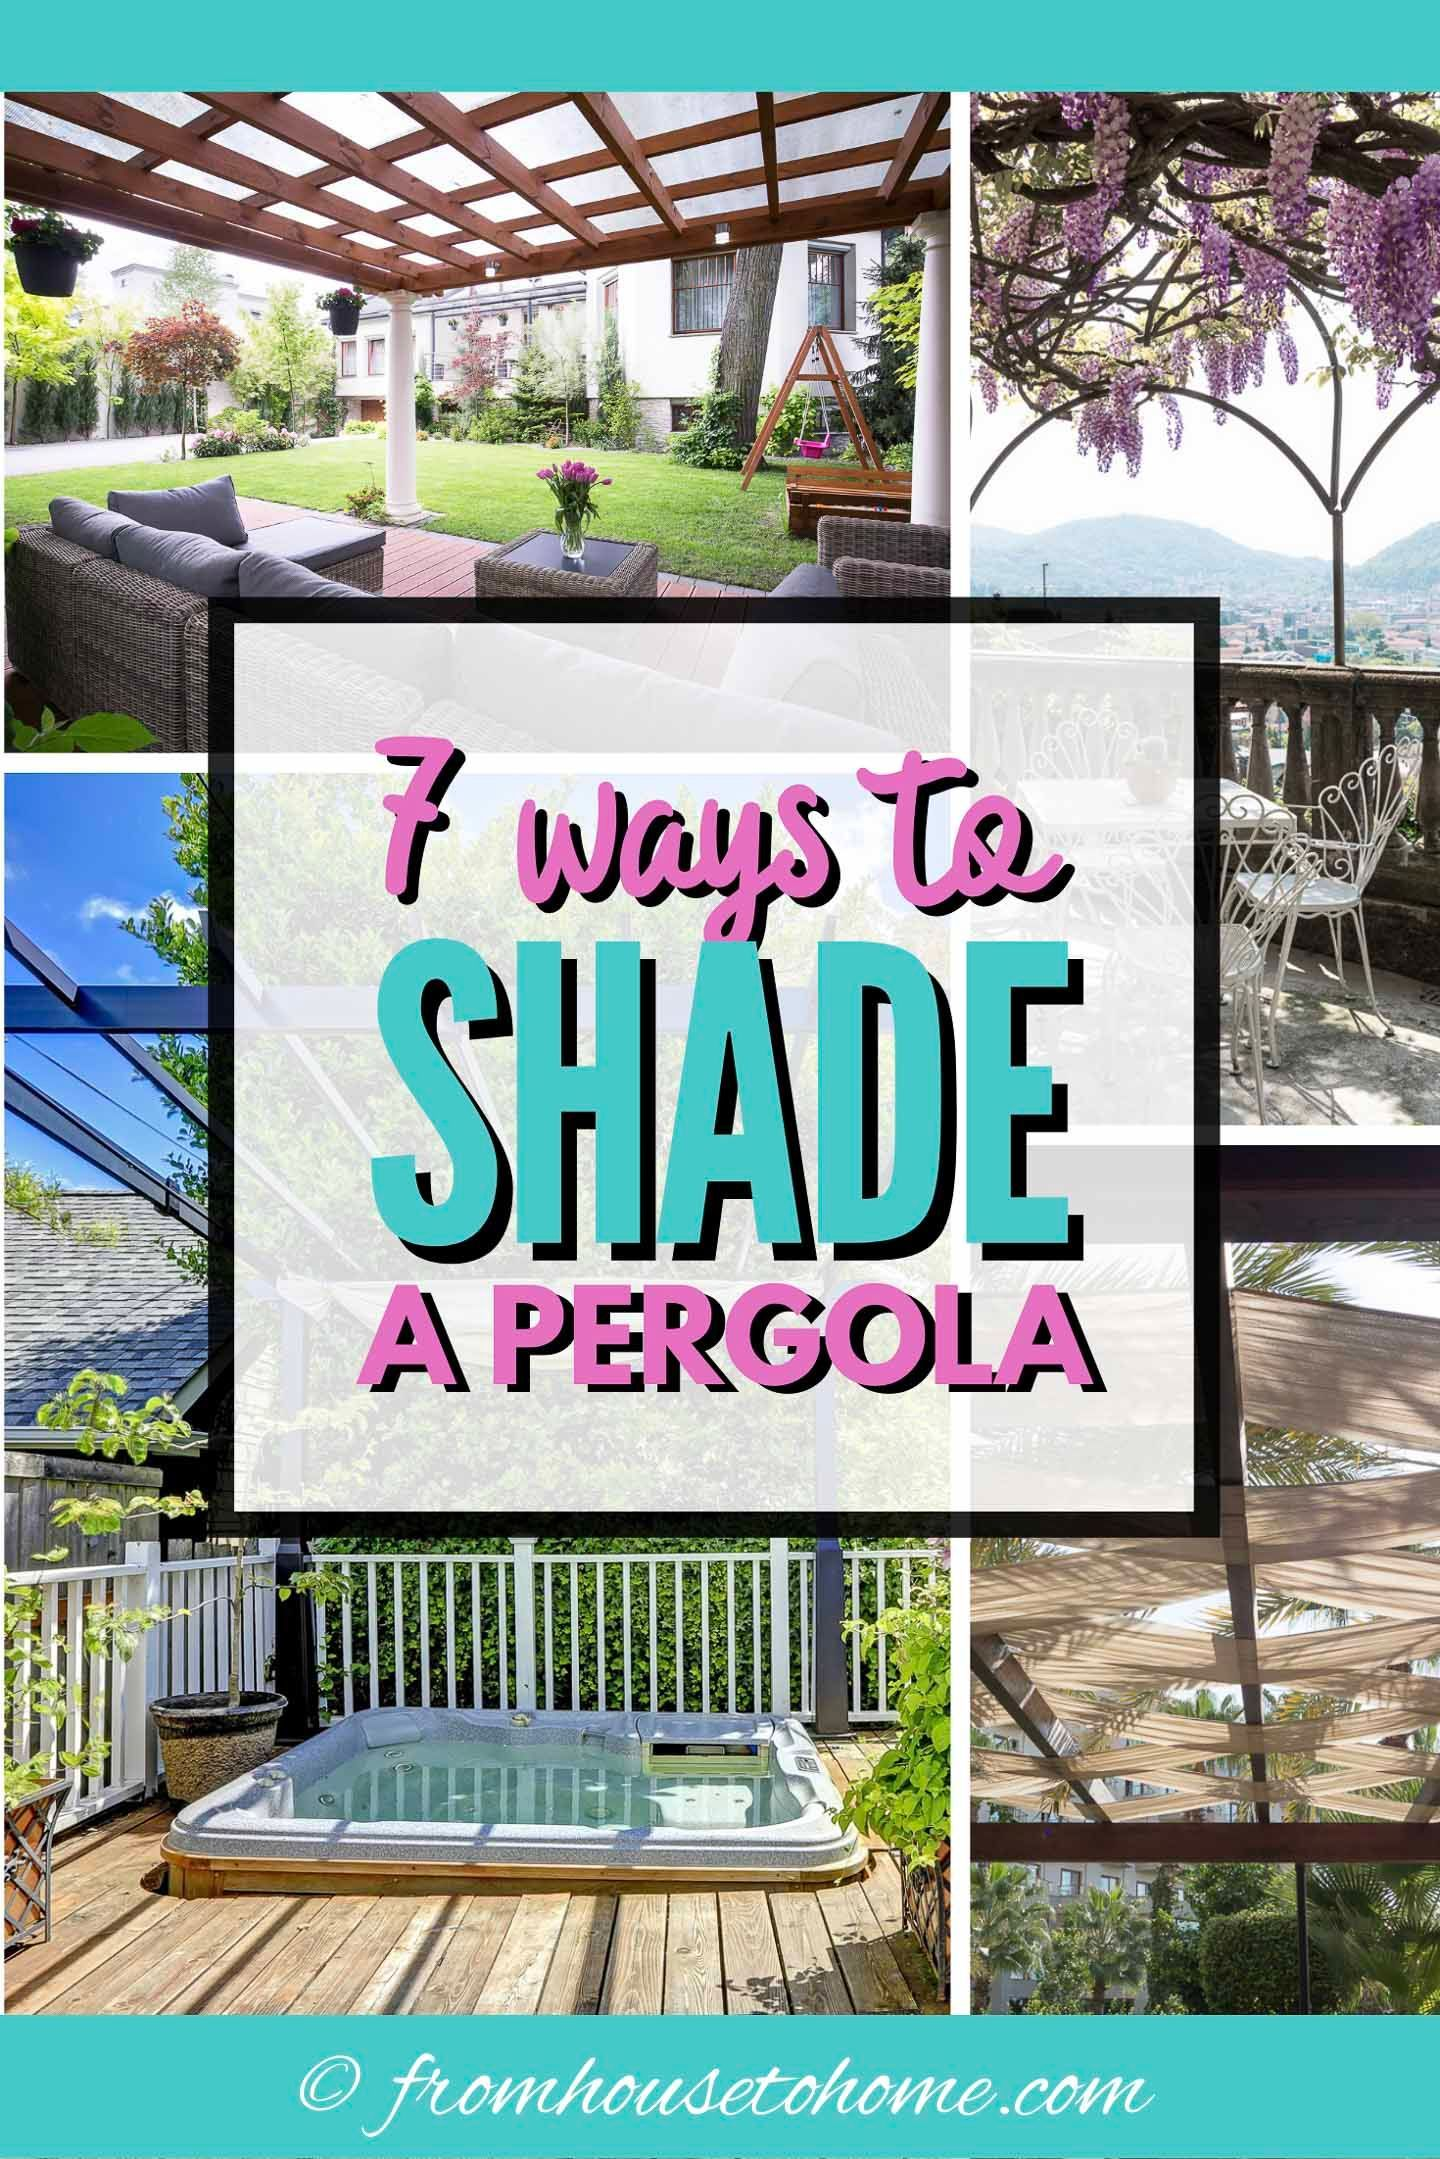 DIY Pergola Cover Ideas: 7 Ways To Protect Your Patio From ... on Patio Cover Ideas For Rain id=65322